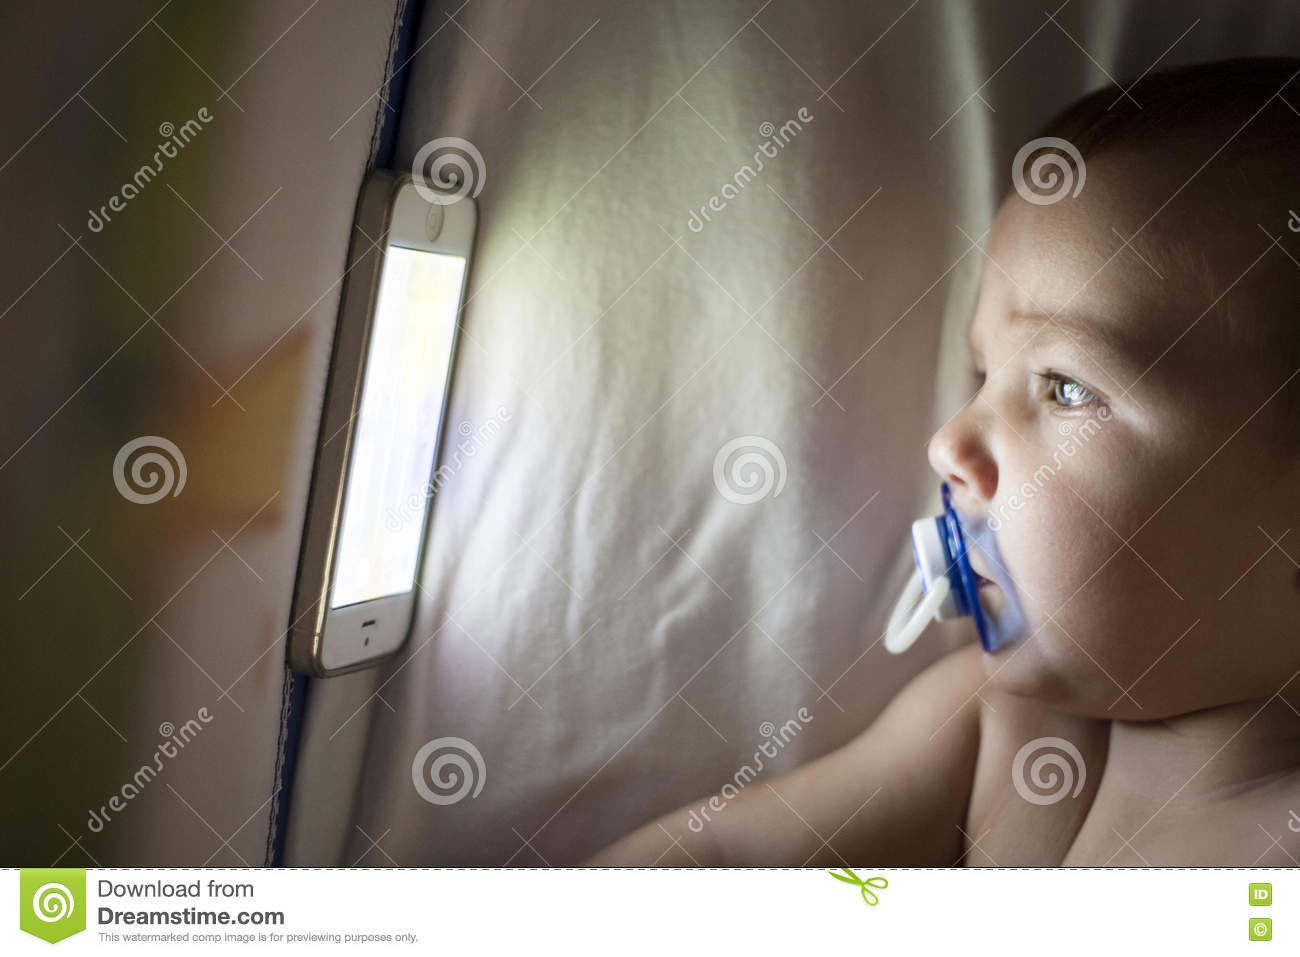 Baby watching a lullaby cartoons with mobile phone on the crib